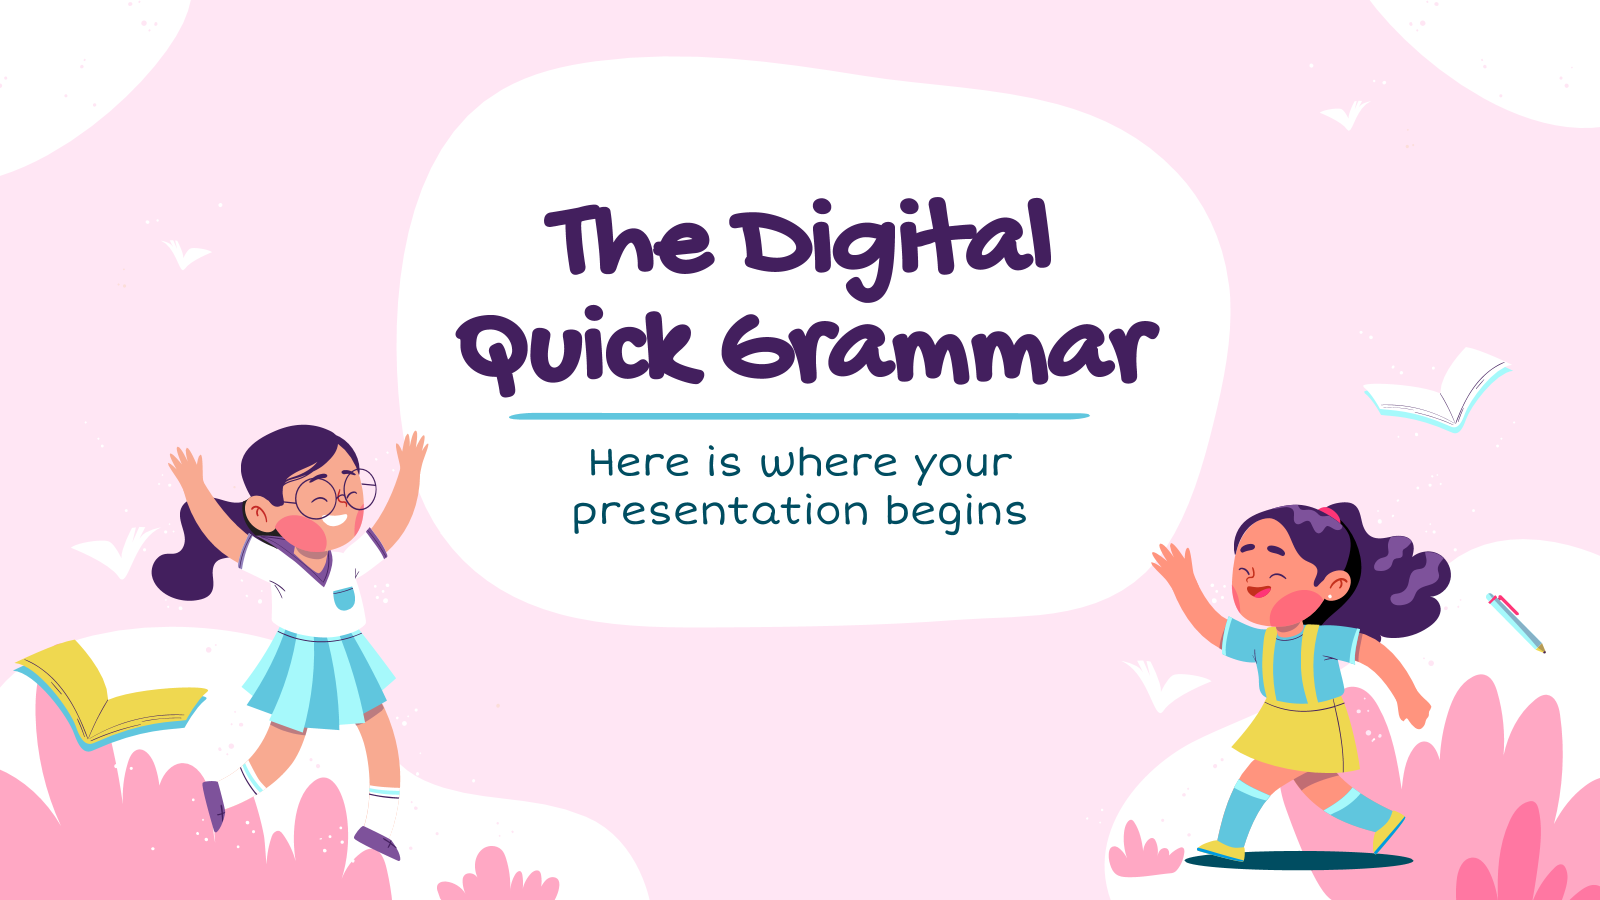 The Digital Quick Grammar presentation template